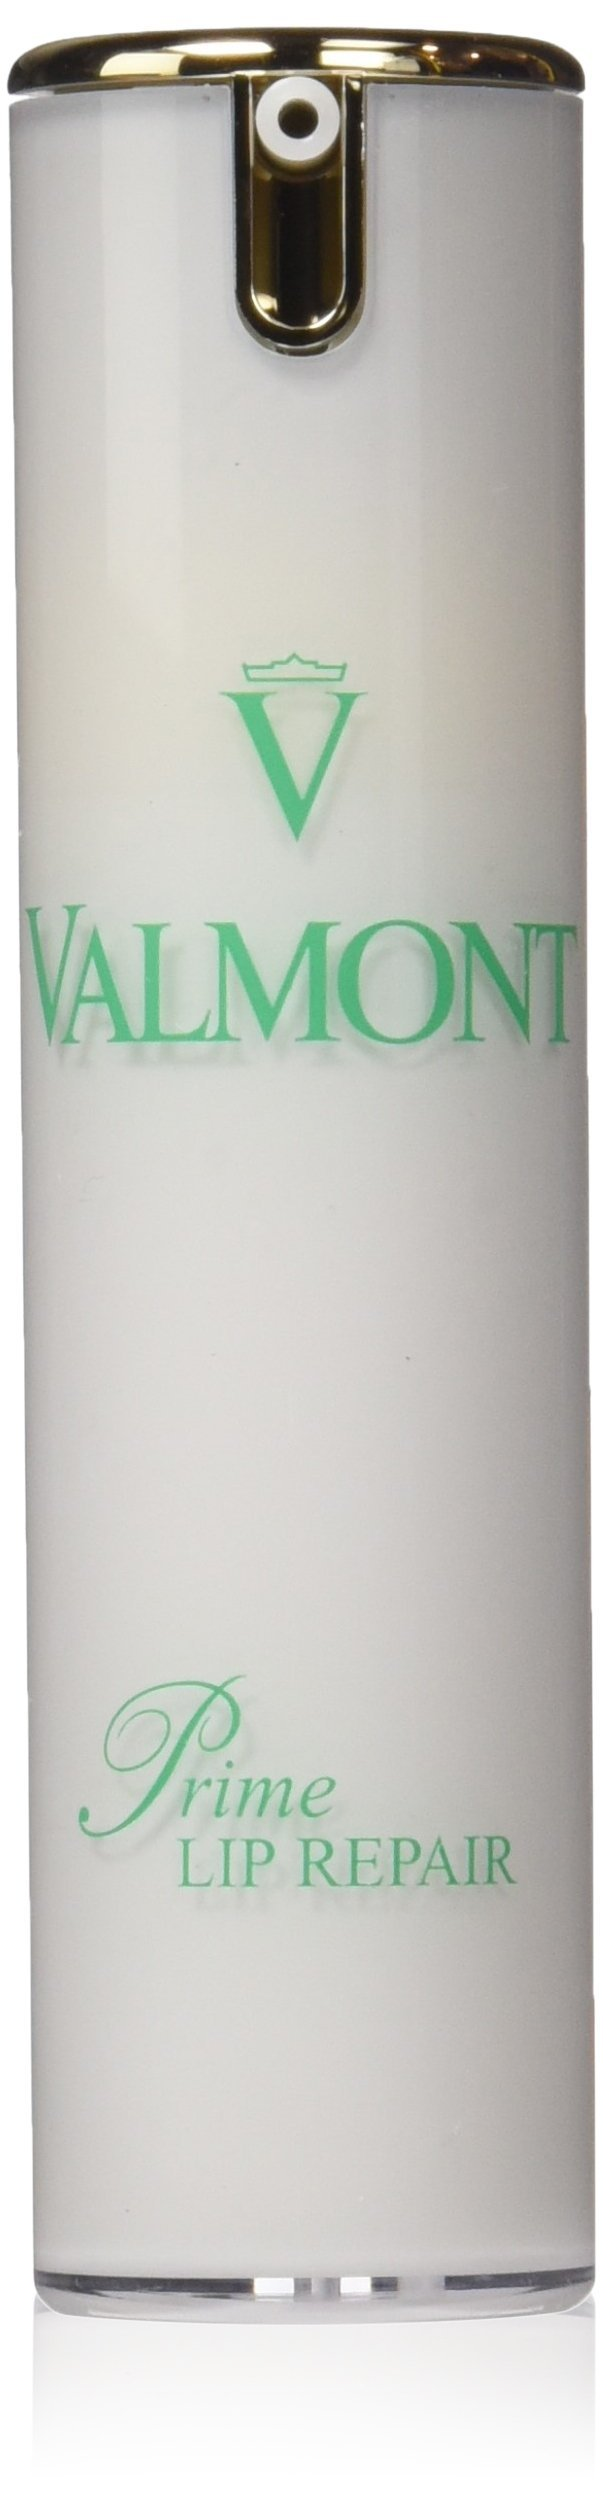 Valmont Specific Areas Prime Lip Repair, 0.5 Fluid Ounce by Valmont (Image #1)